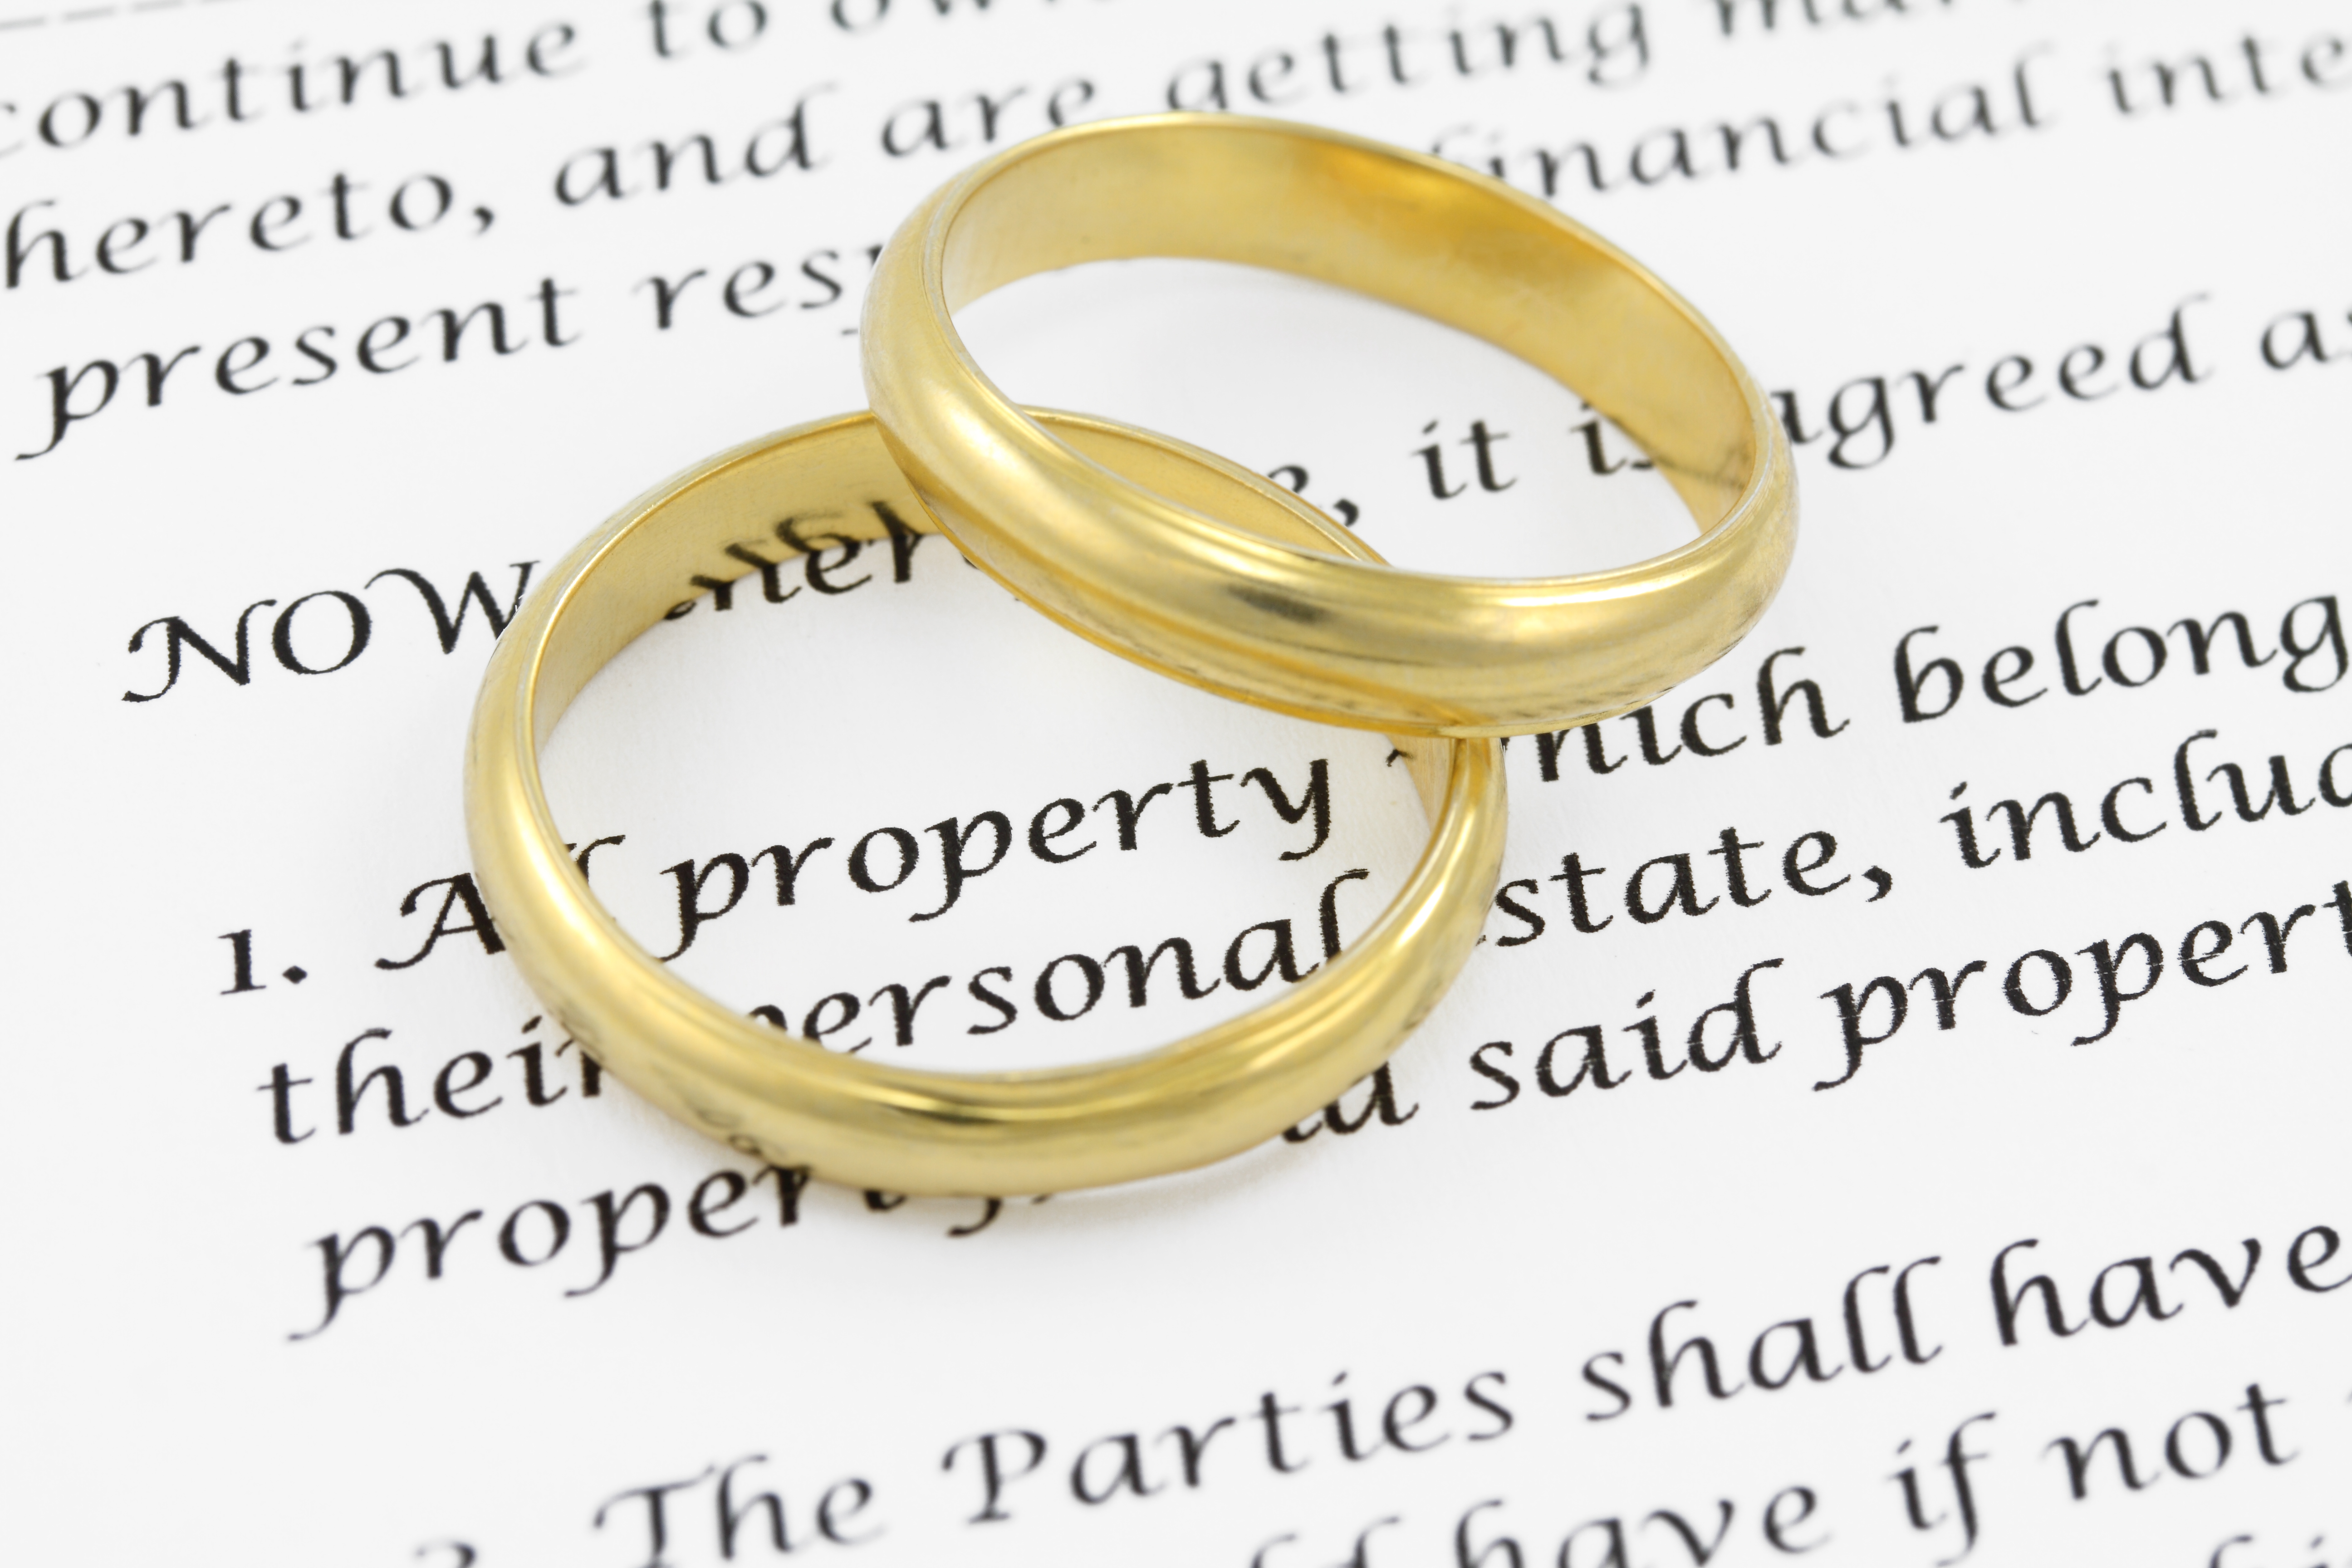 Jewelry cars heirlooms gifts and the need for a prenuptial everyone who intends to marry in new york needs a prenuptial agreement for one very important reason among others platinumwayz